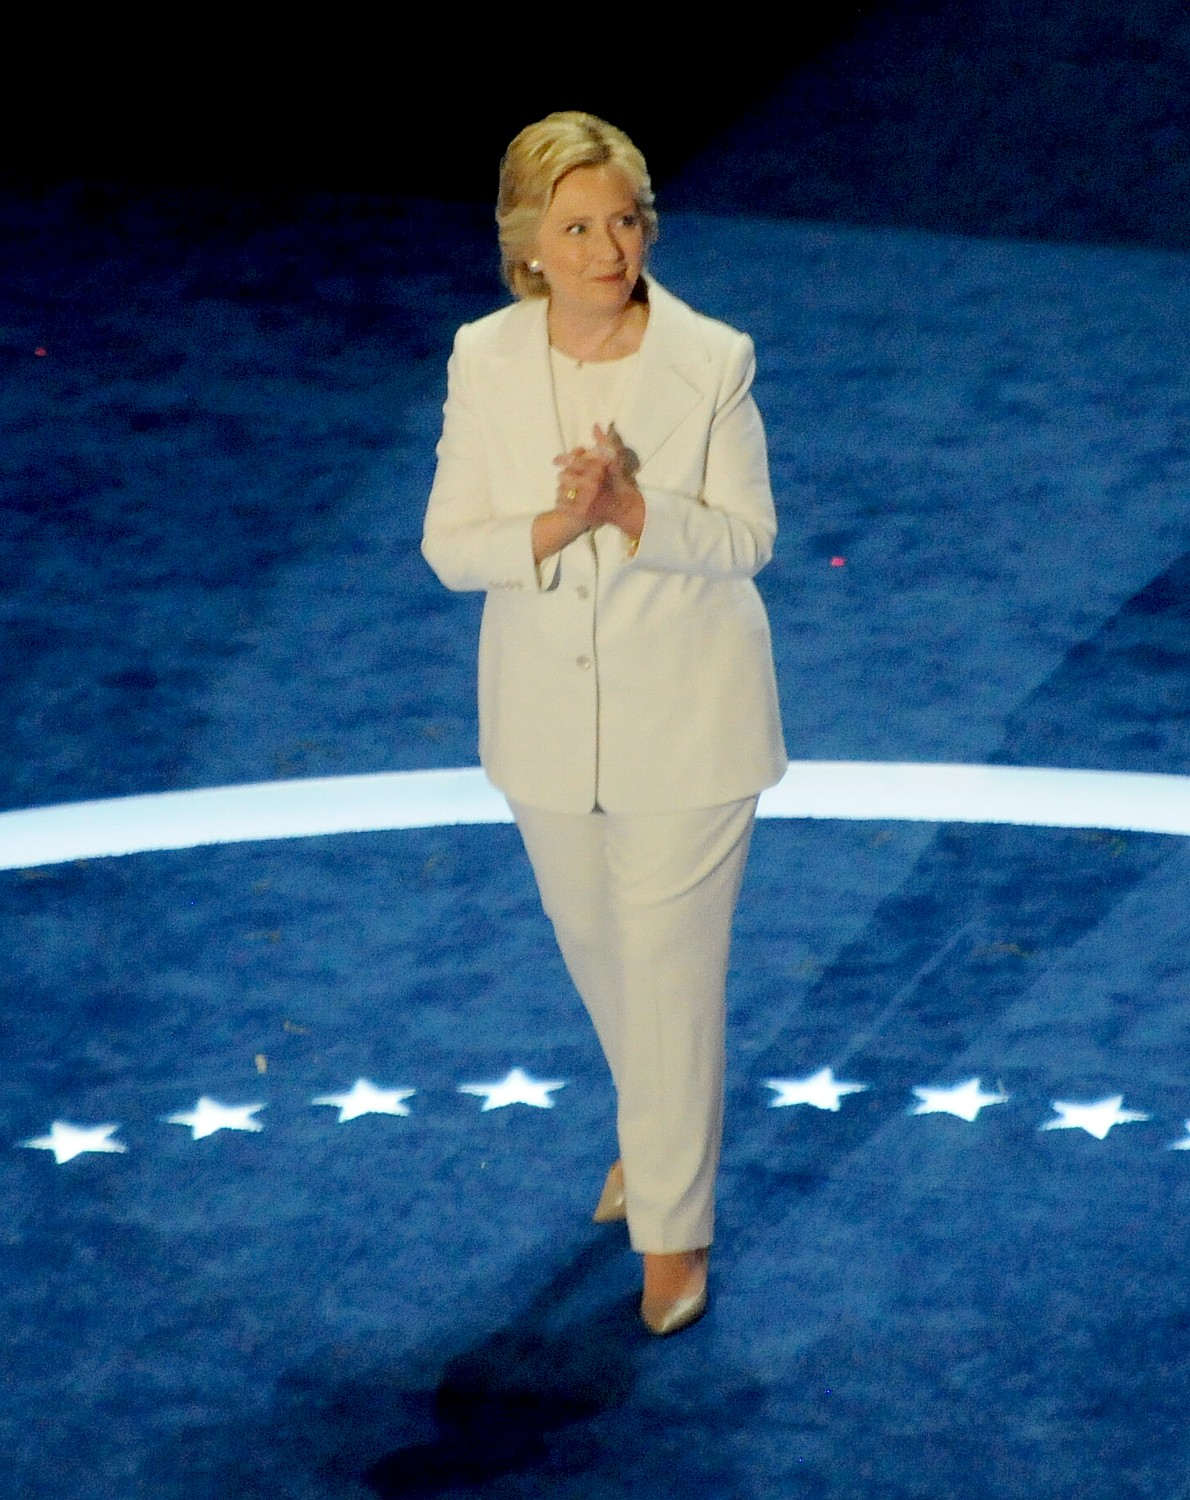 Historic nomination of Hillary Rodham Clinton for President by Democratic party, at Democratic National Convention in Philadelphia, July 2016 © Karen Rubin/news-photos-features.com